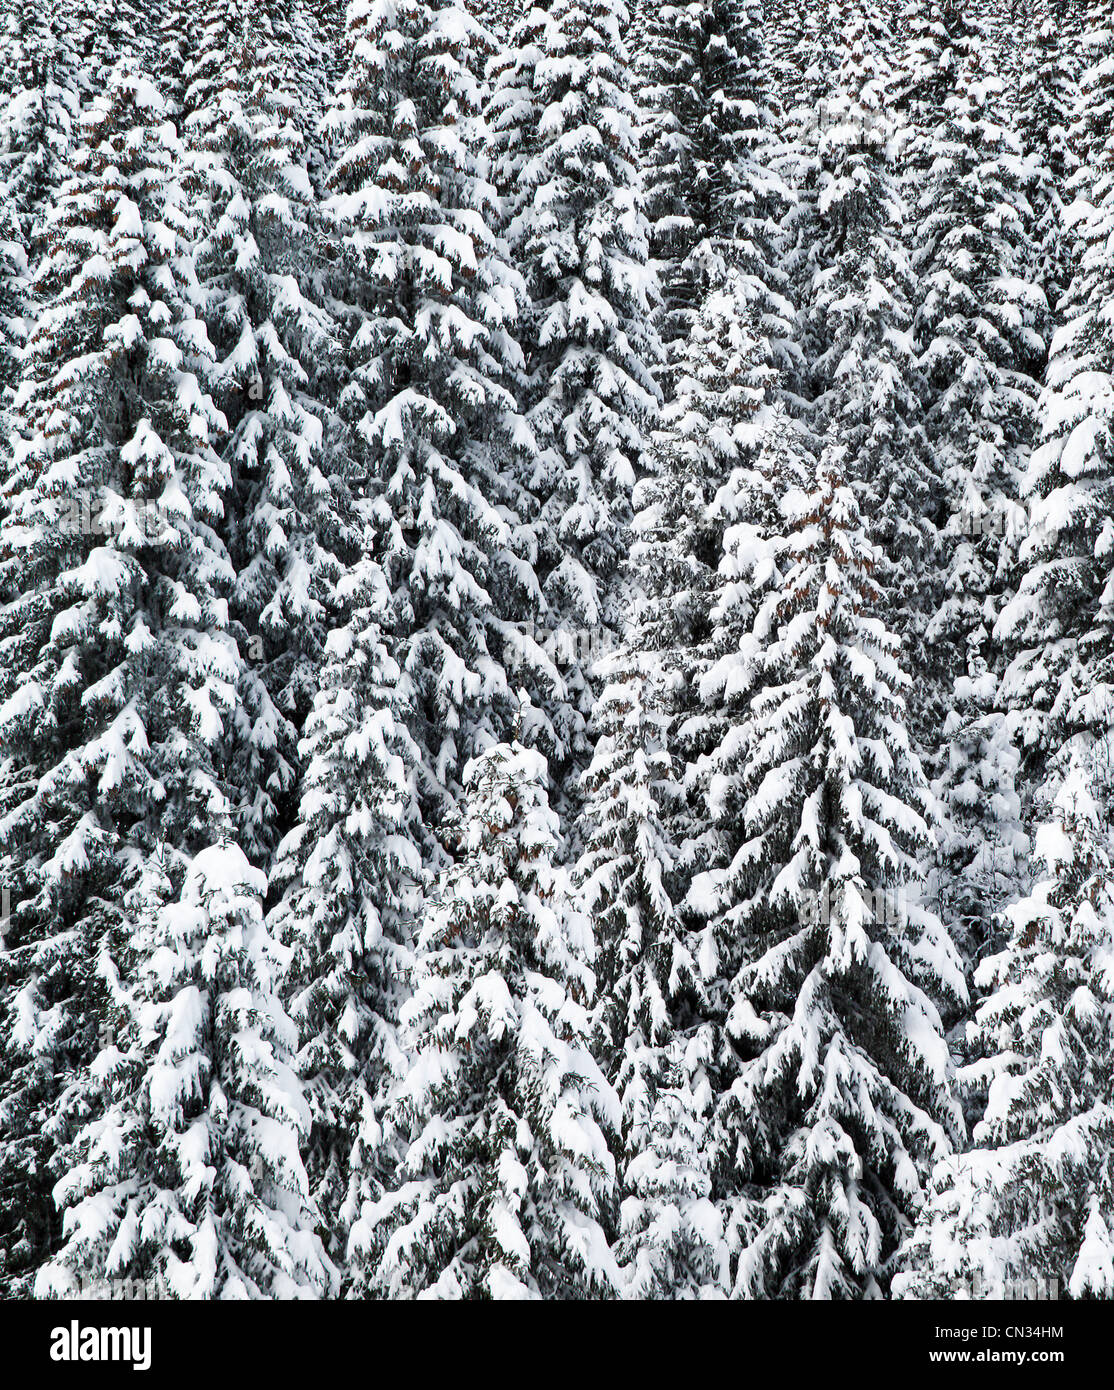 Snow covered trees, Grand Massif, French Alps - Stock Image